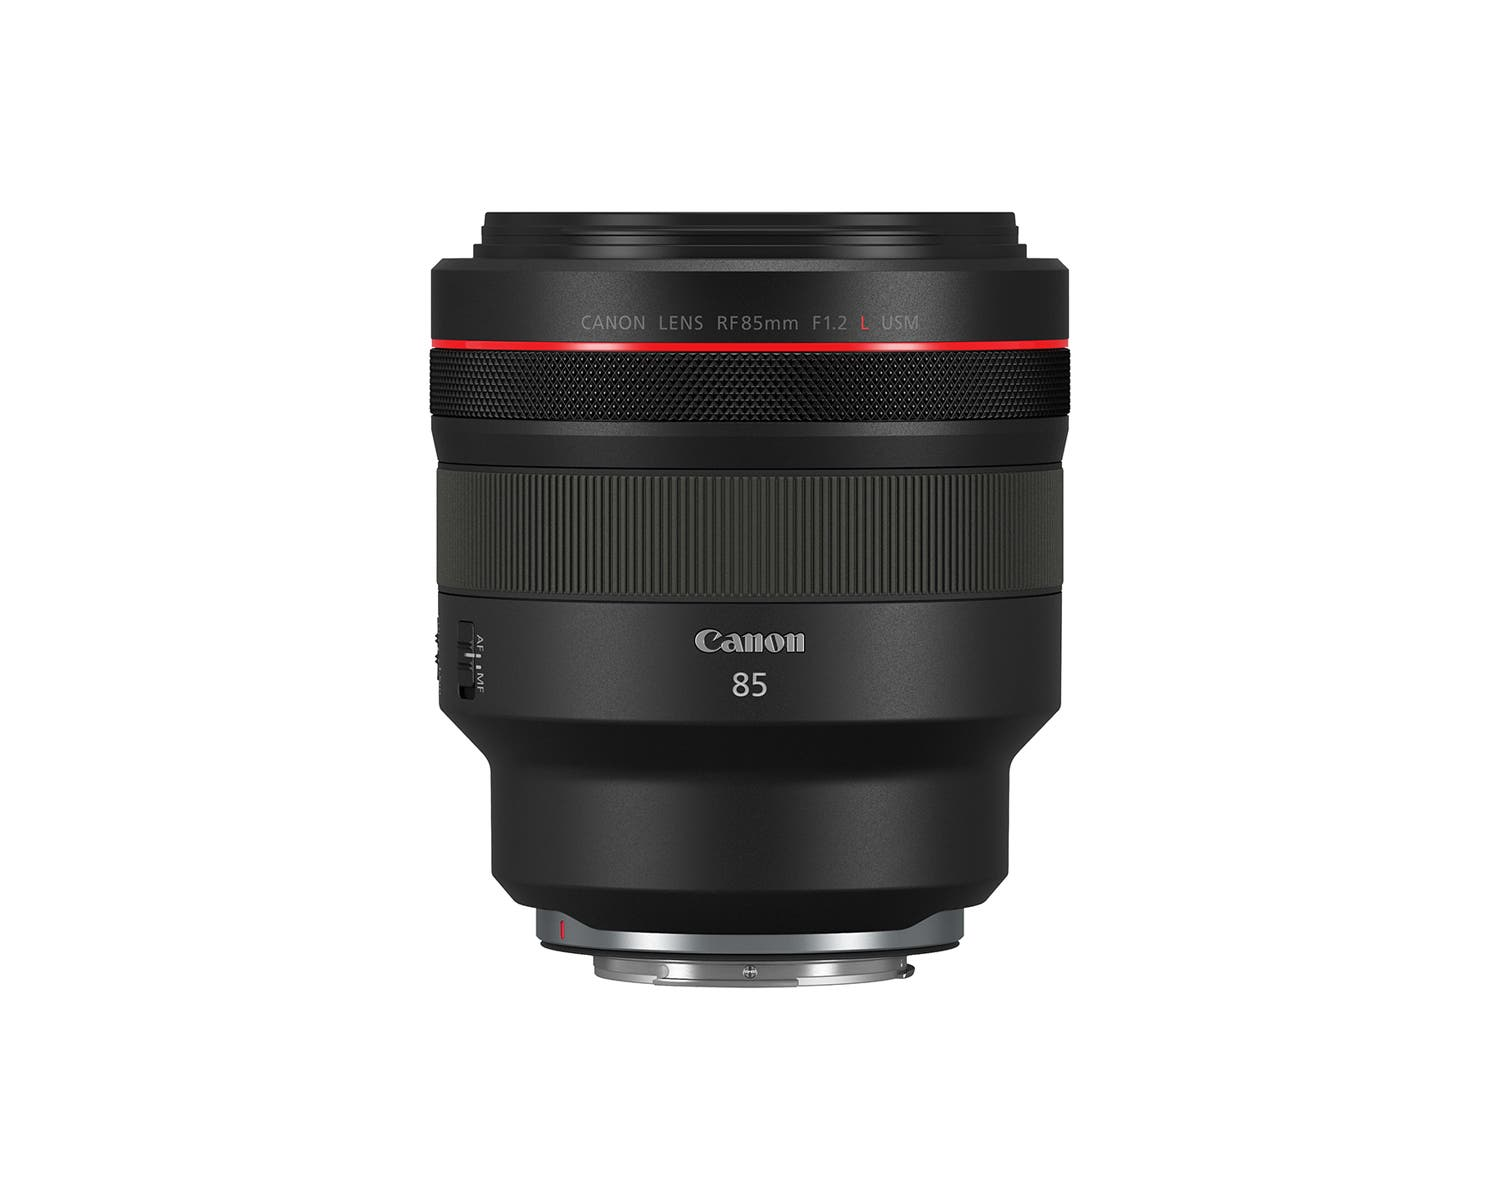 The Canon 85mm F1.2 L USM RF Is $901 More Than Sony's 85 G Master